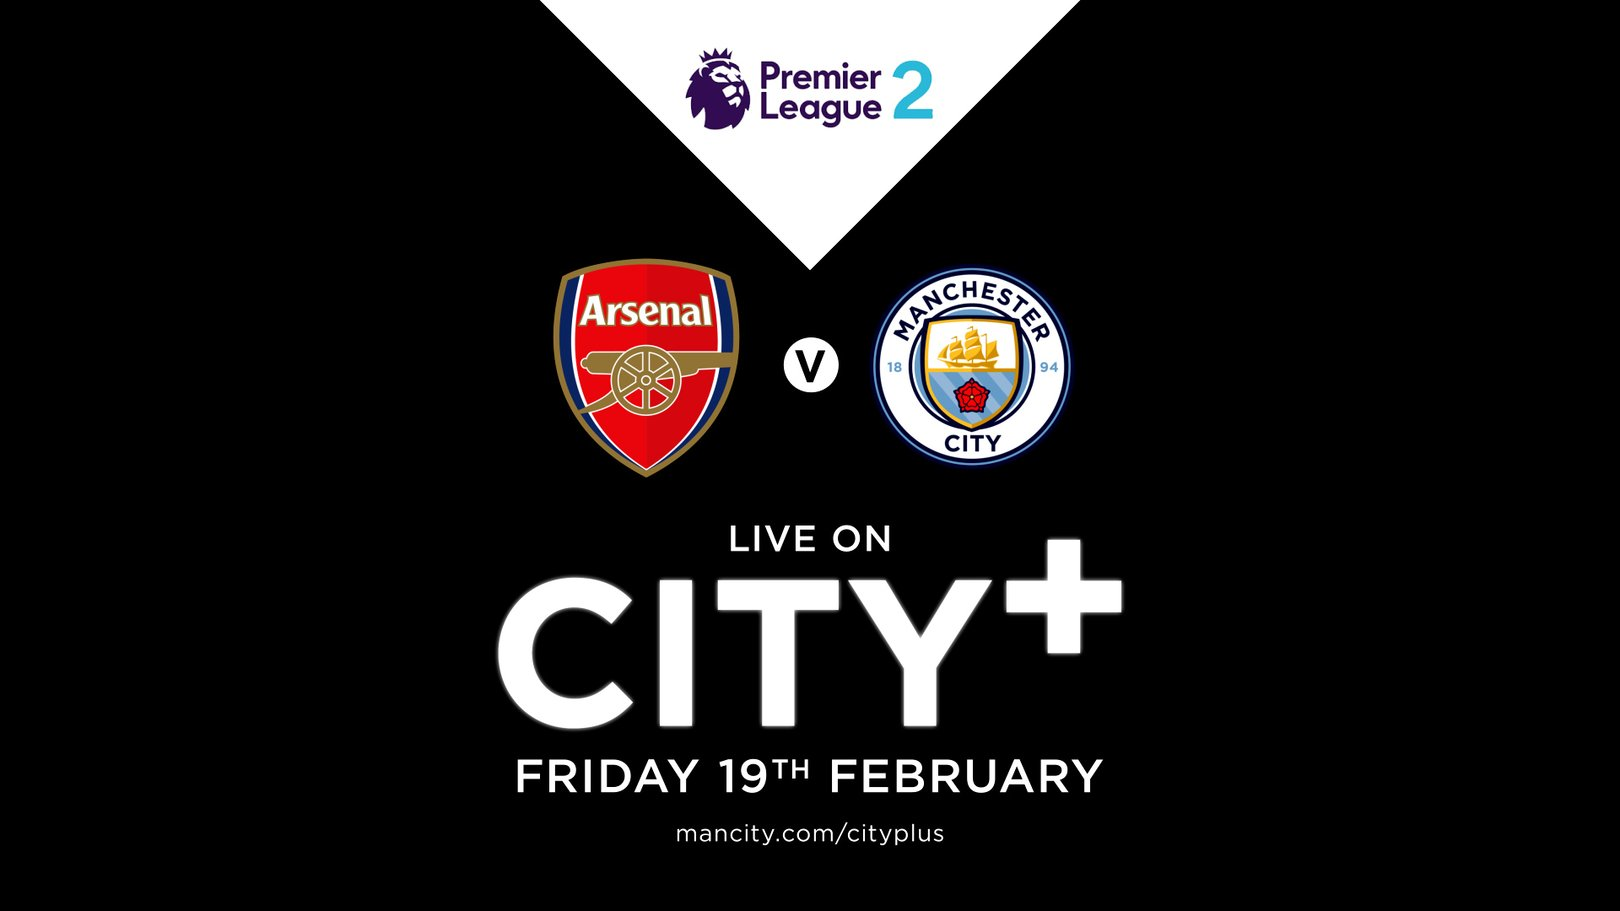 Watch EDS away at Arsenal on CITY+